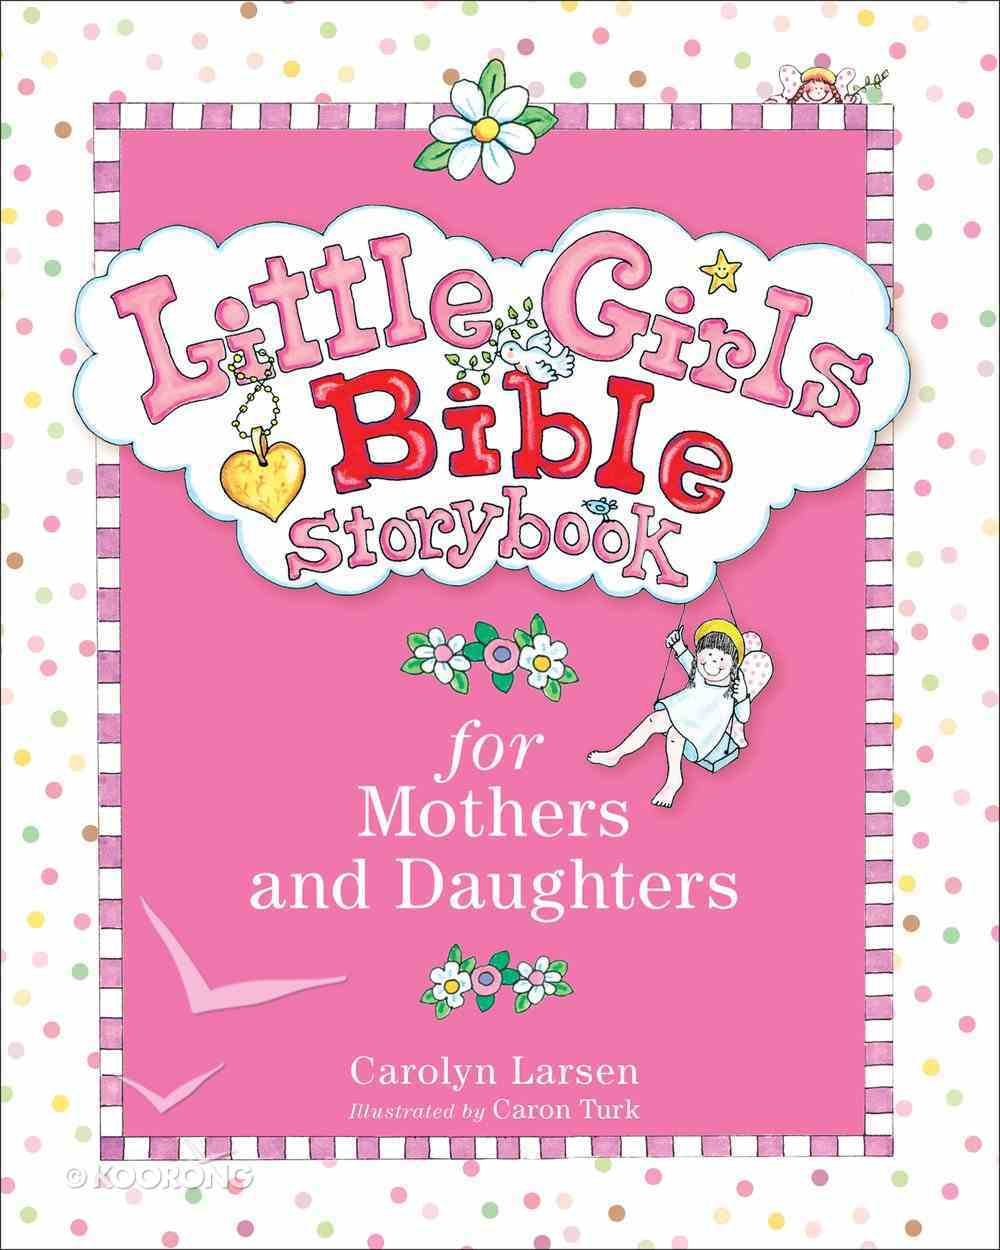 Bible Storybook For Mothers and Daughters (Little Girls Series) eBook